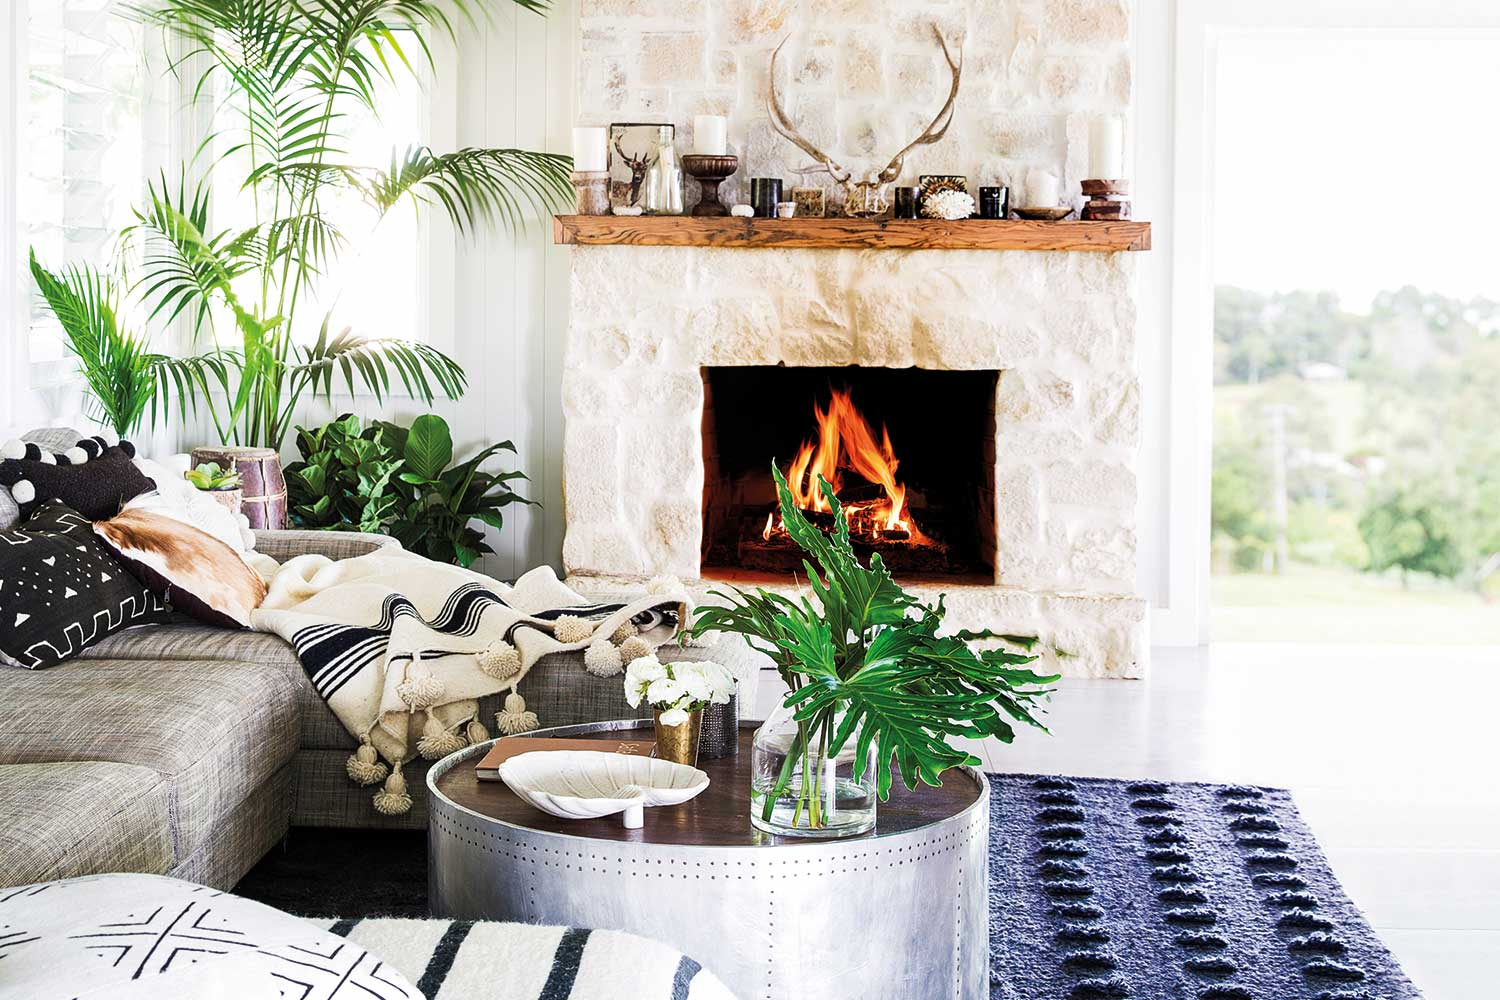 100 of the most beautiful rooms we've ever seen | Home ... on Beautiful Room Pics  id=22568